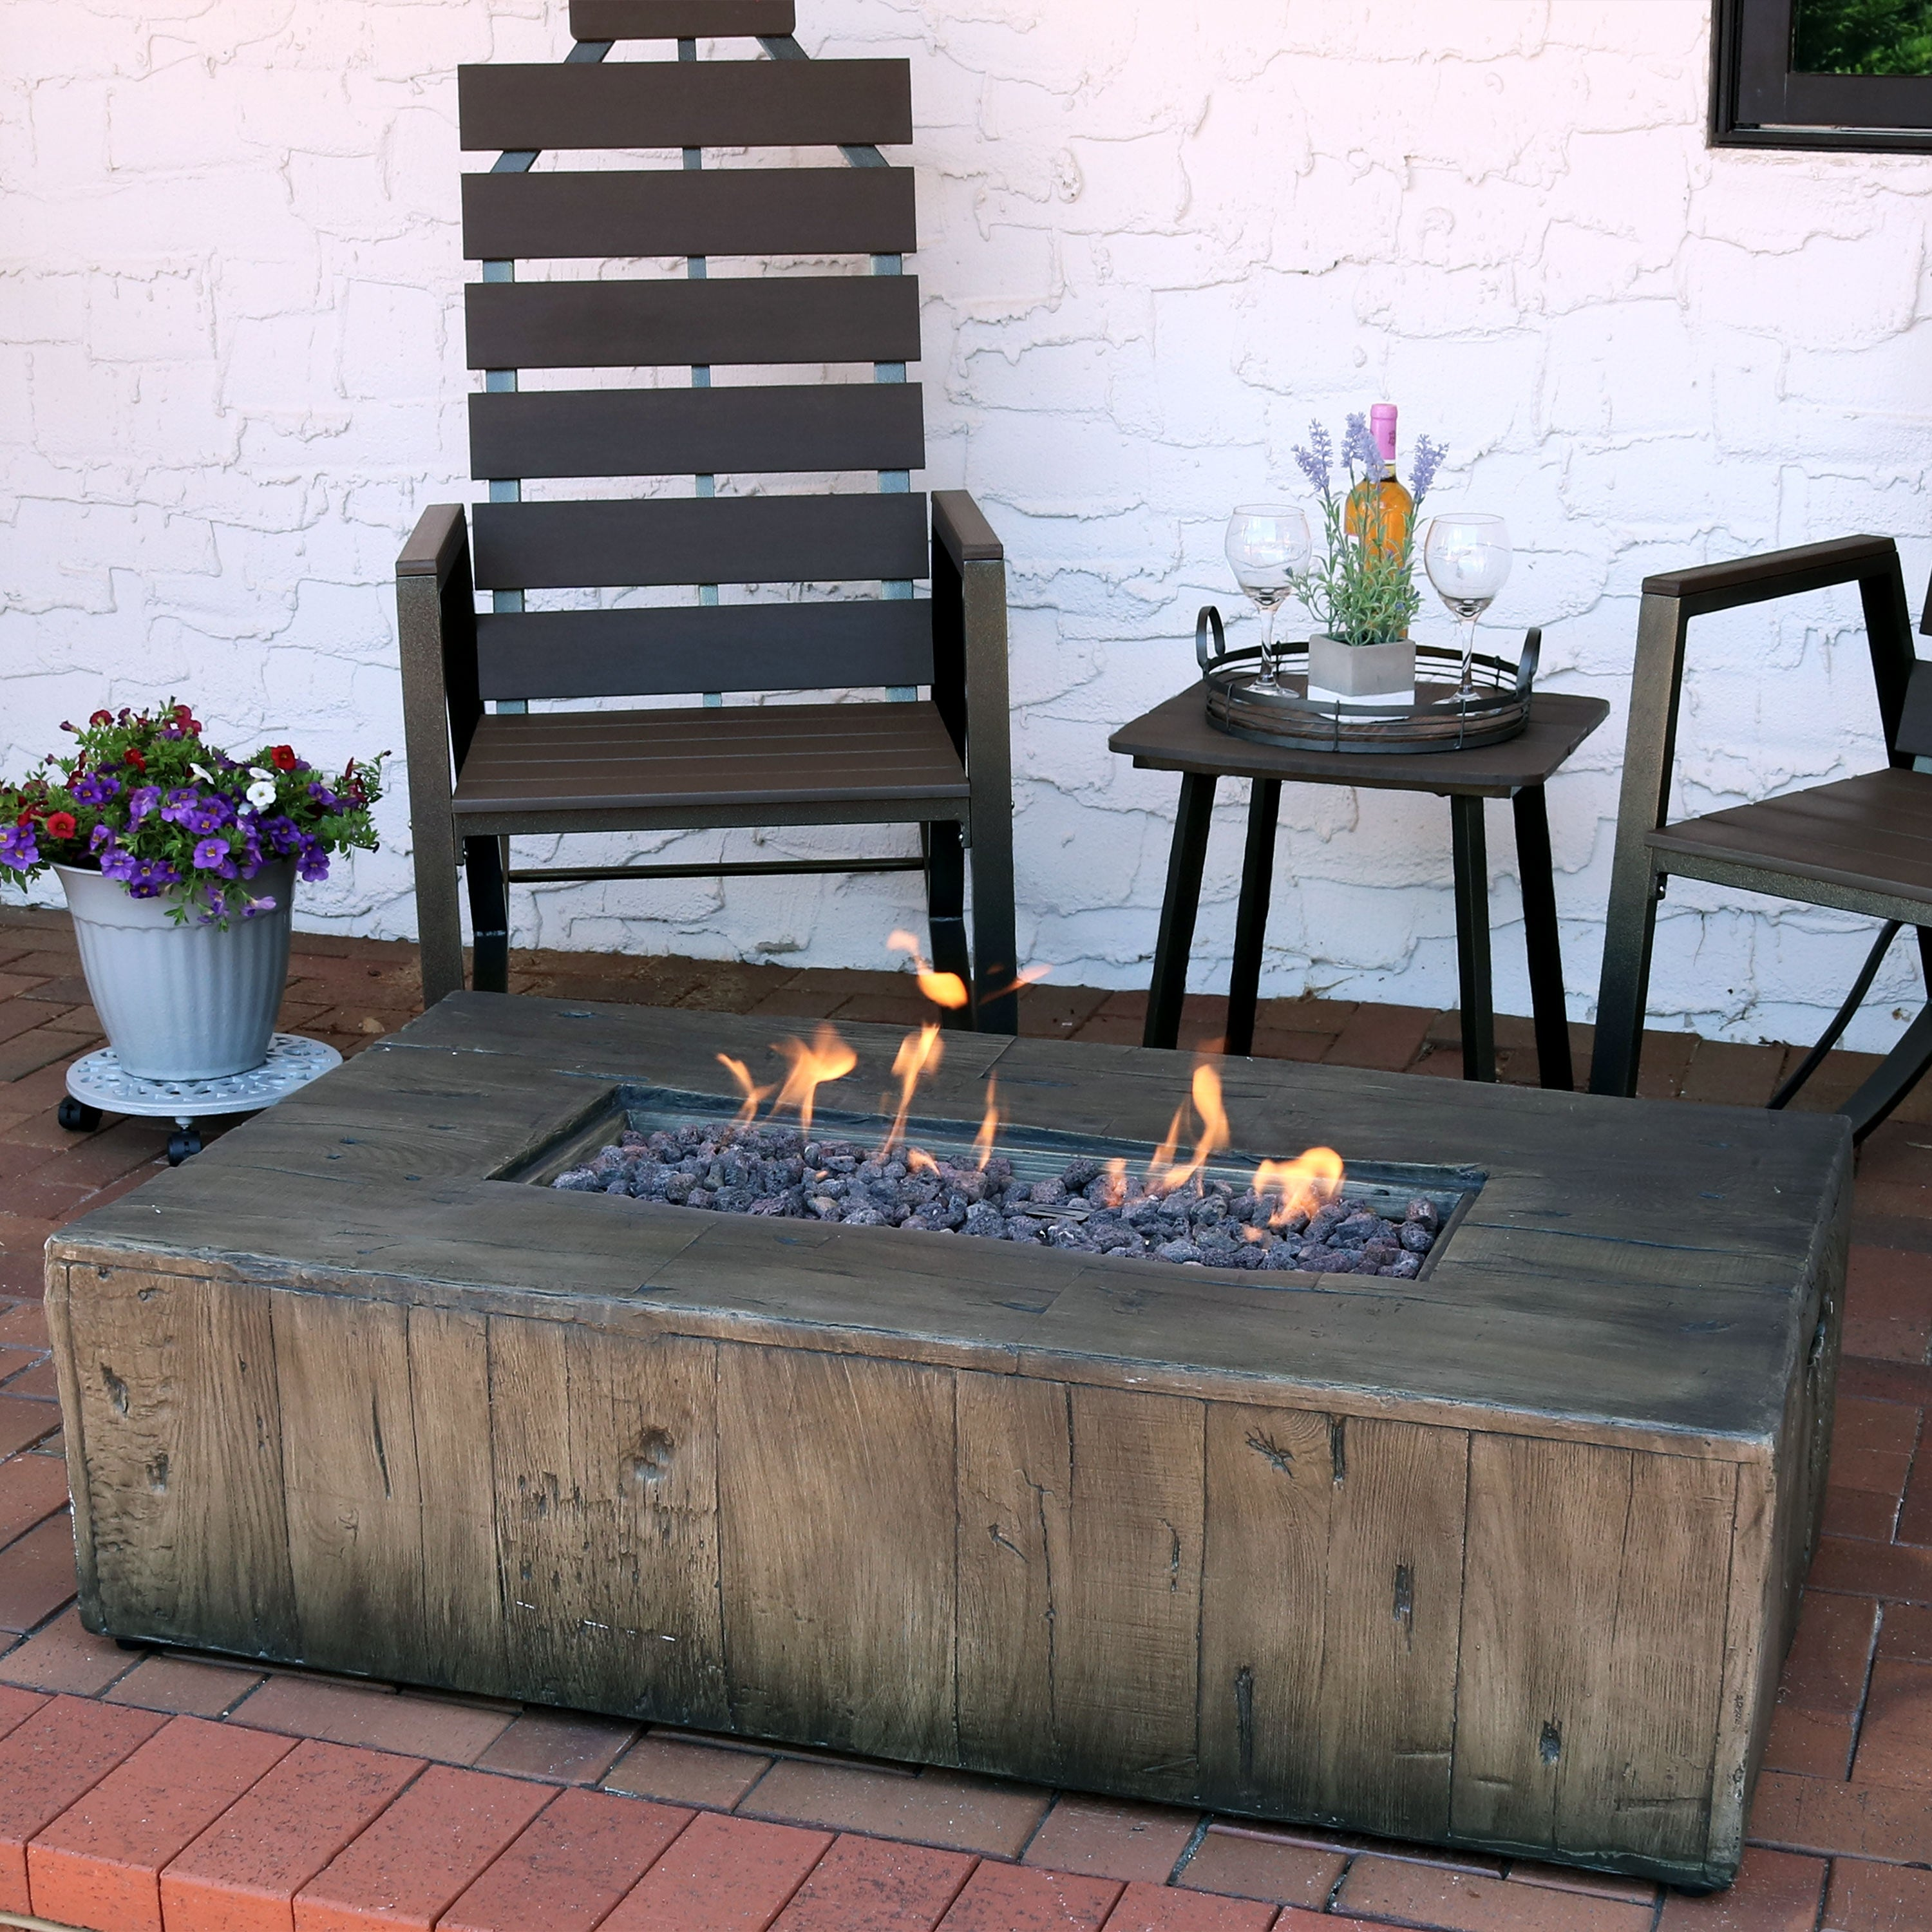 Shop Black Friday Deals On Sunnydaze Rustic Faux Wood Propane Gas Fire Pit Table W Cover Lava Rocks 48 Overstock 22890516